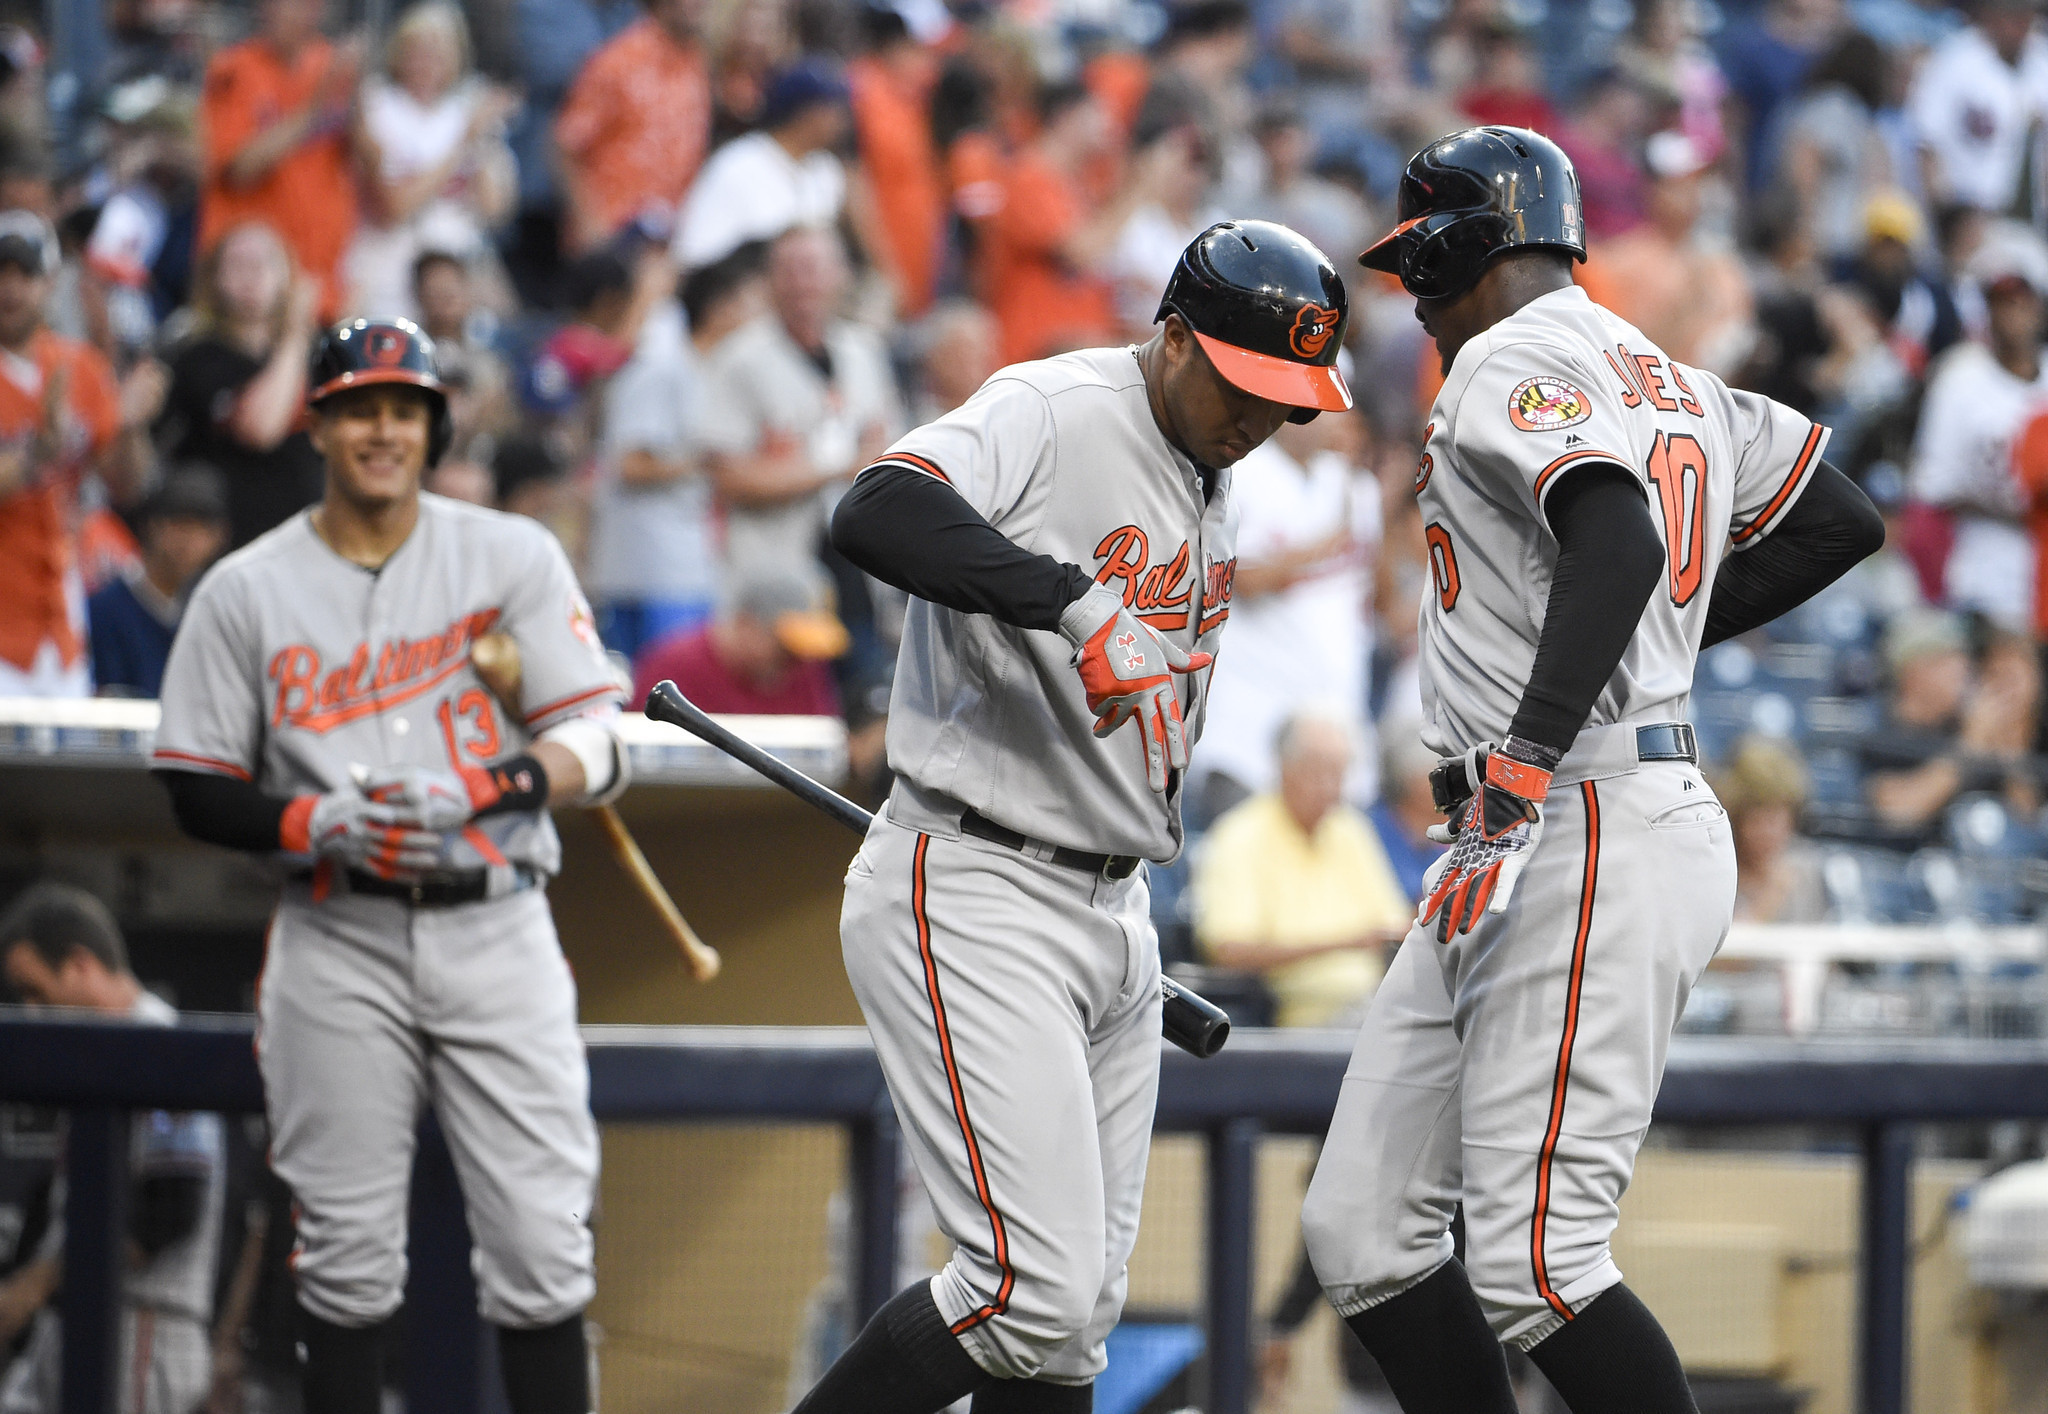 Bal-orioles-recap-birds-stay-hot-hit-three-homers-to-pound-padres-20160628